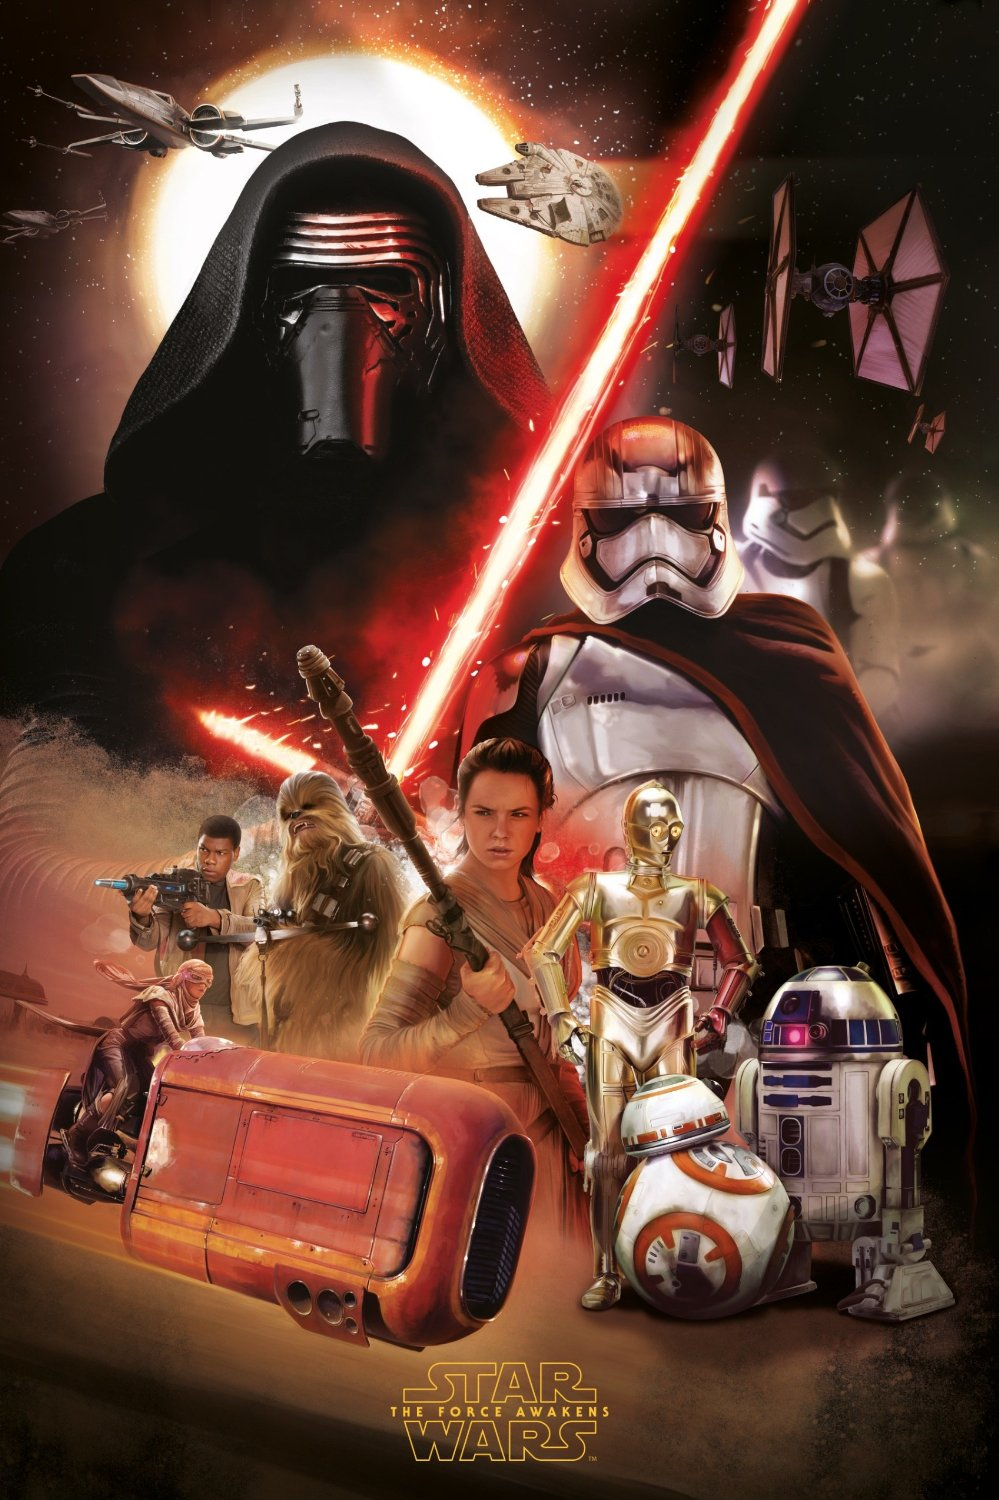 Star Wars The Force Awakens official Poster high resolution